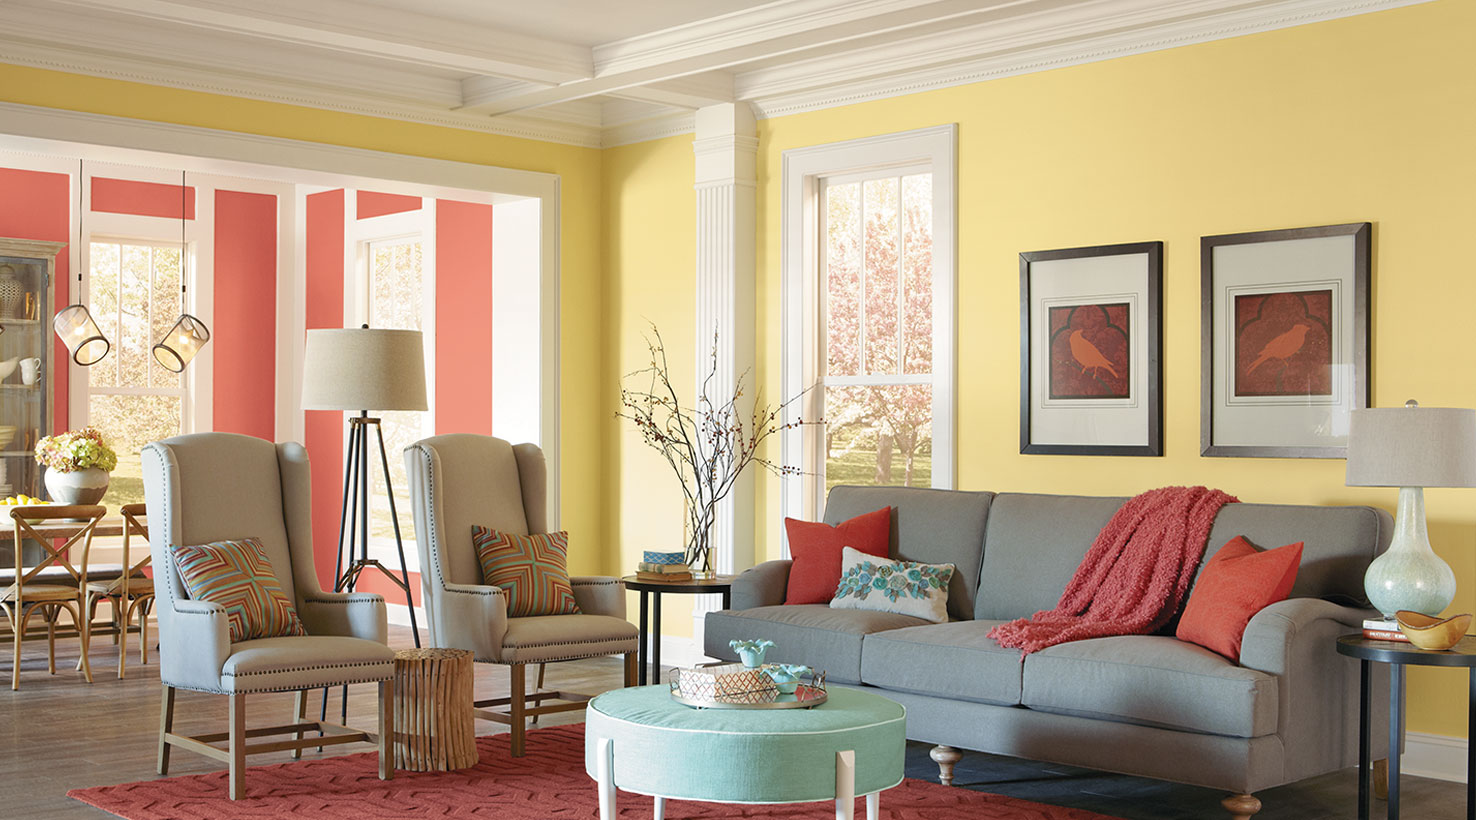 sherwin williams paint colors for living room living room colors sherwin williams 27127